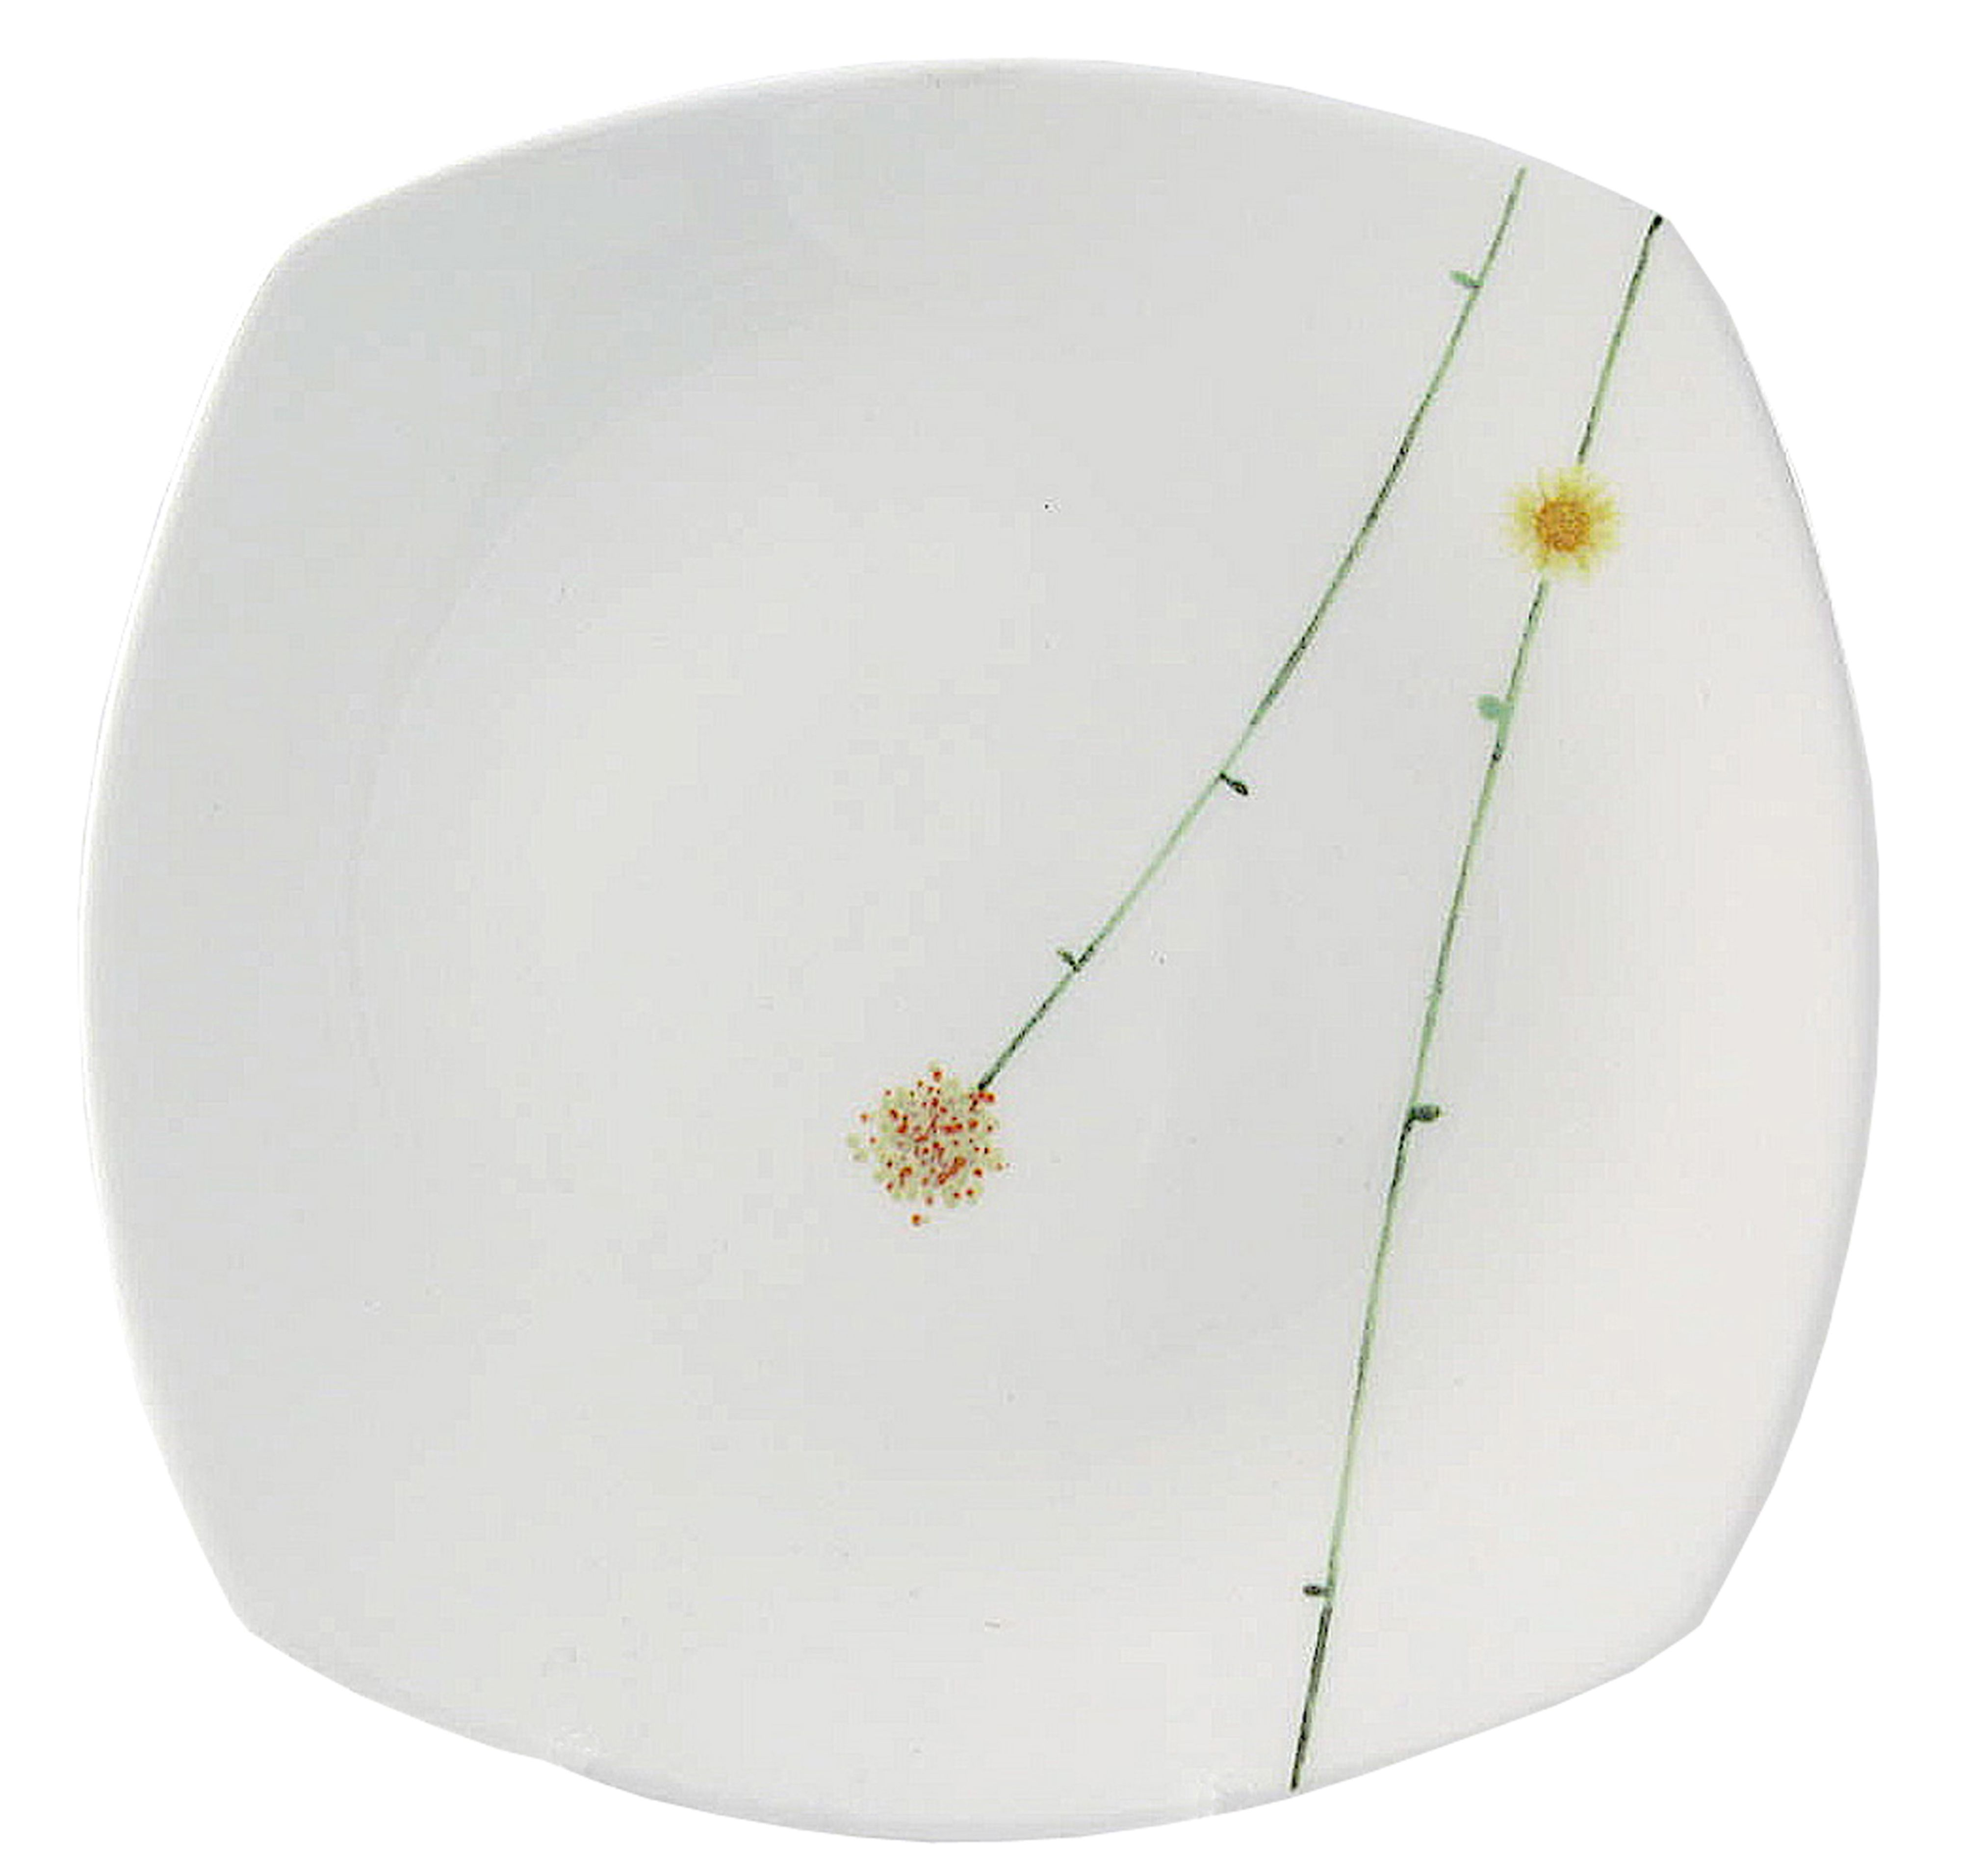 Daisy chain side plate